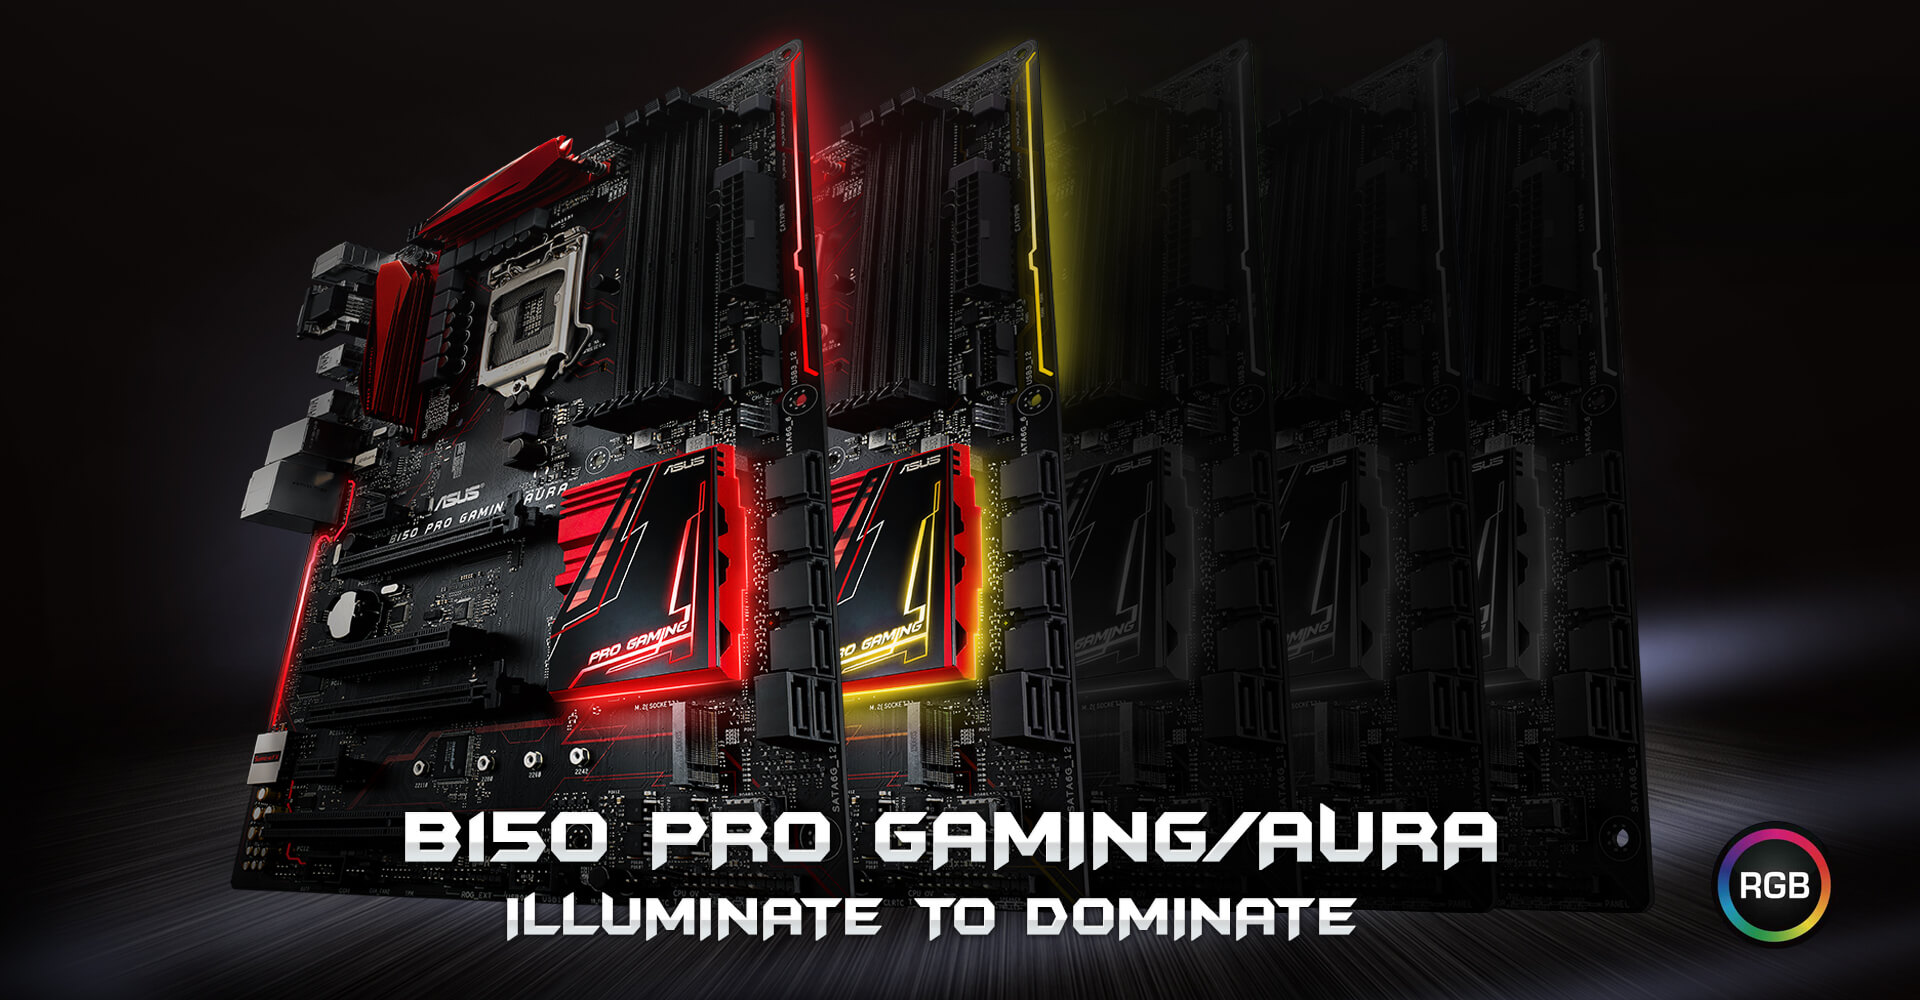 ASUS B150 PRO GAMING/AURA INTEL CHIPSET DRIVER